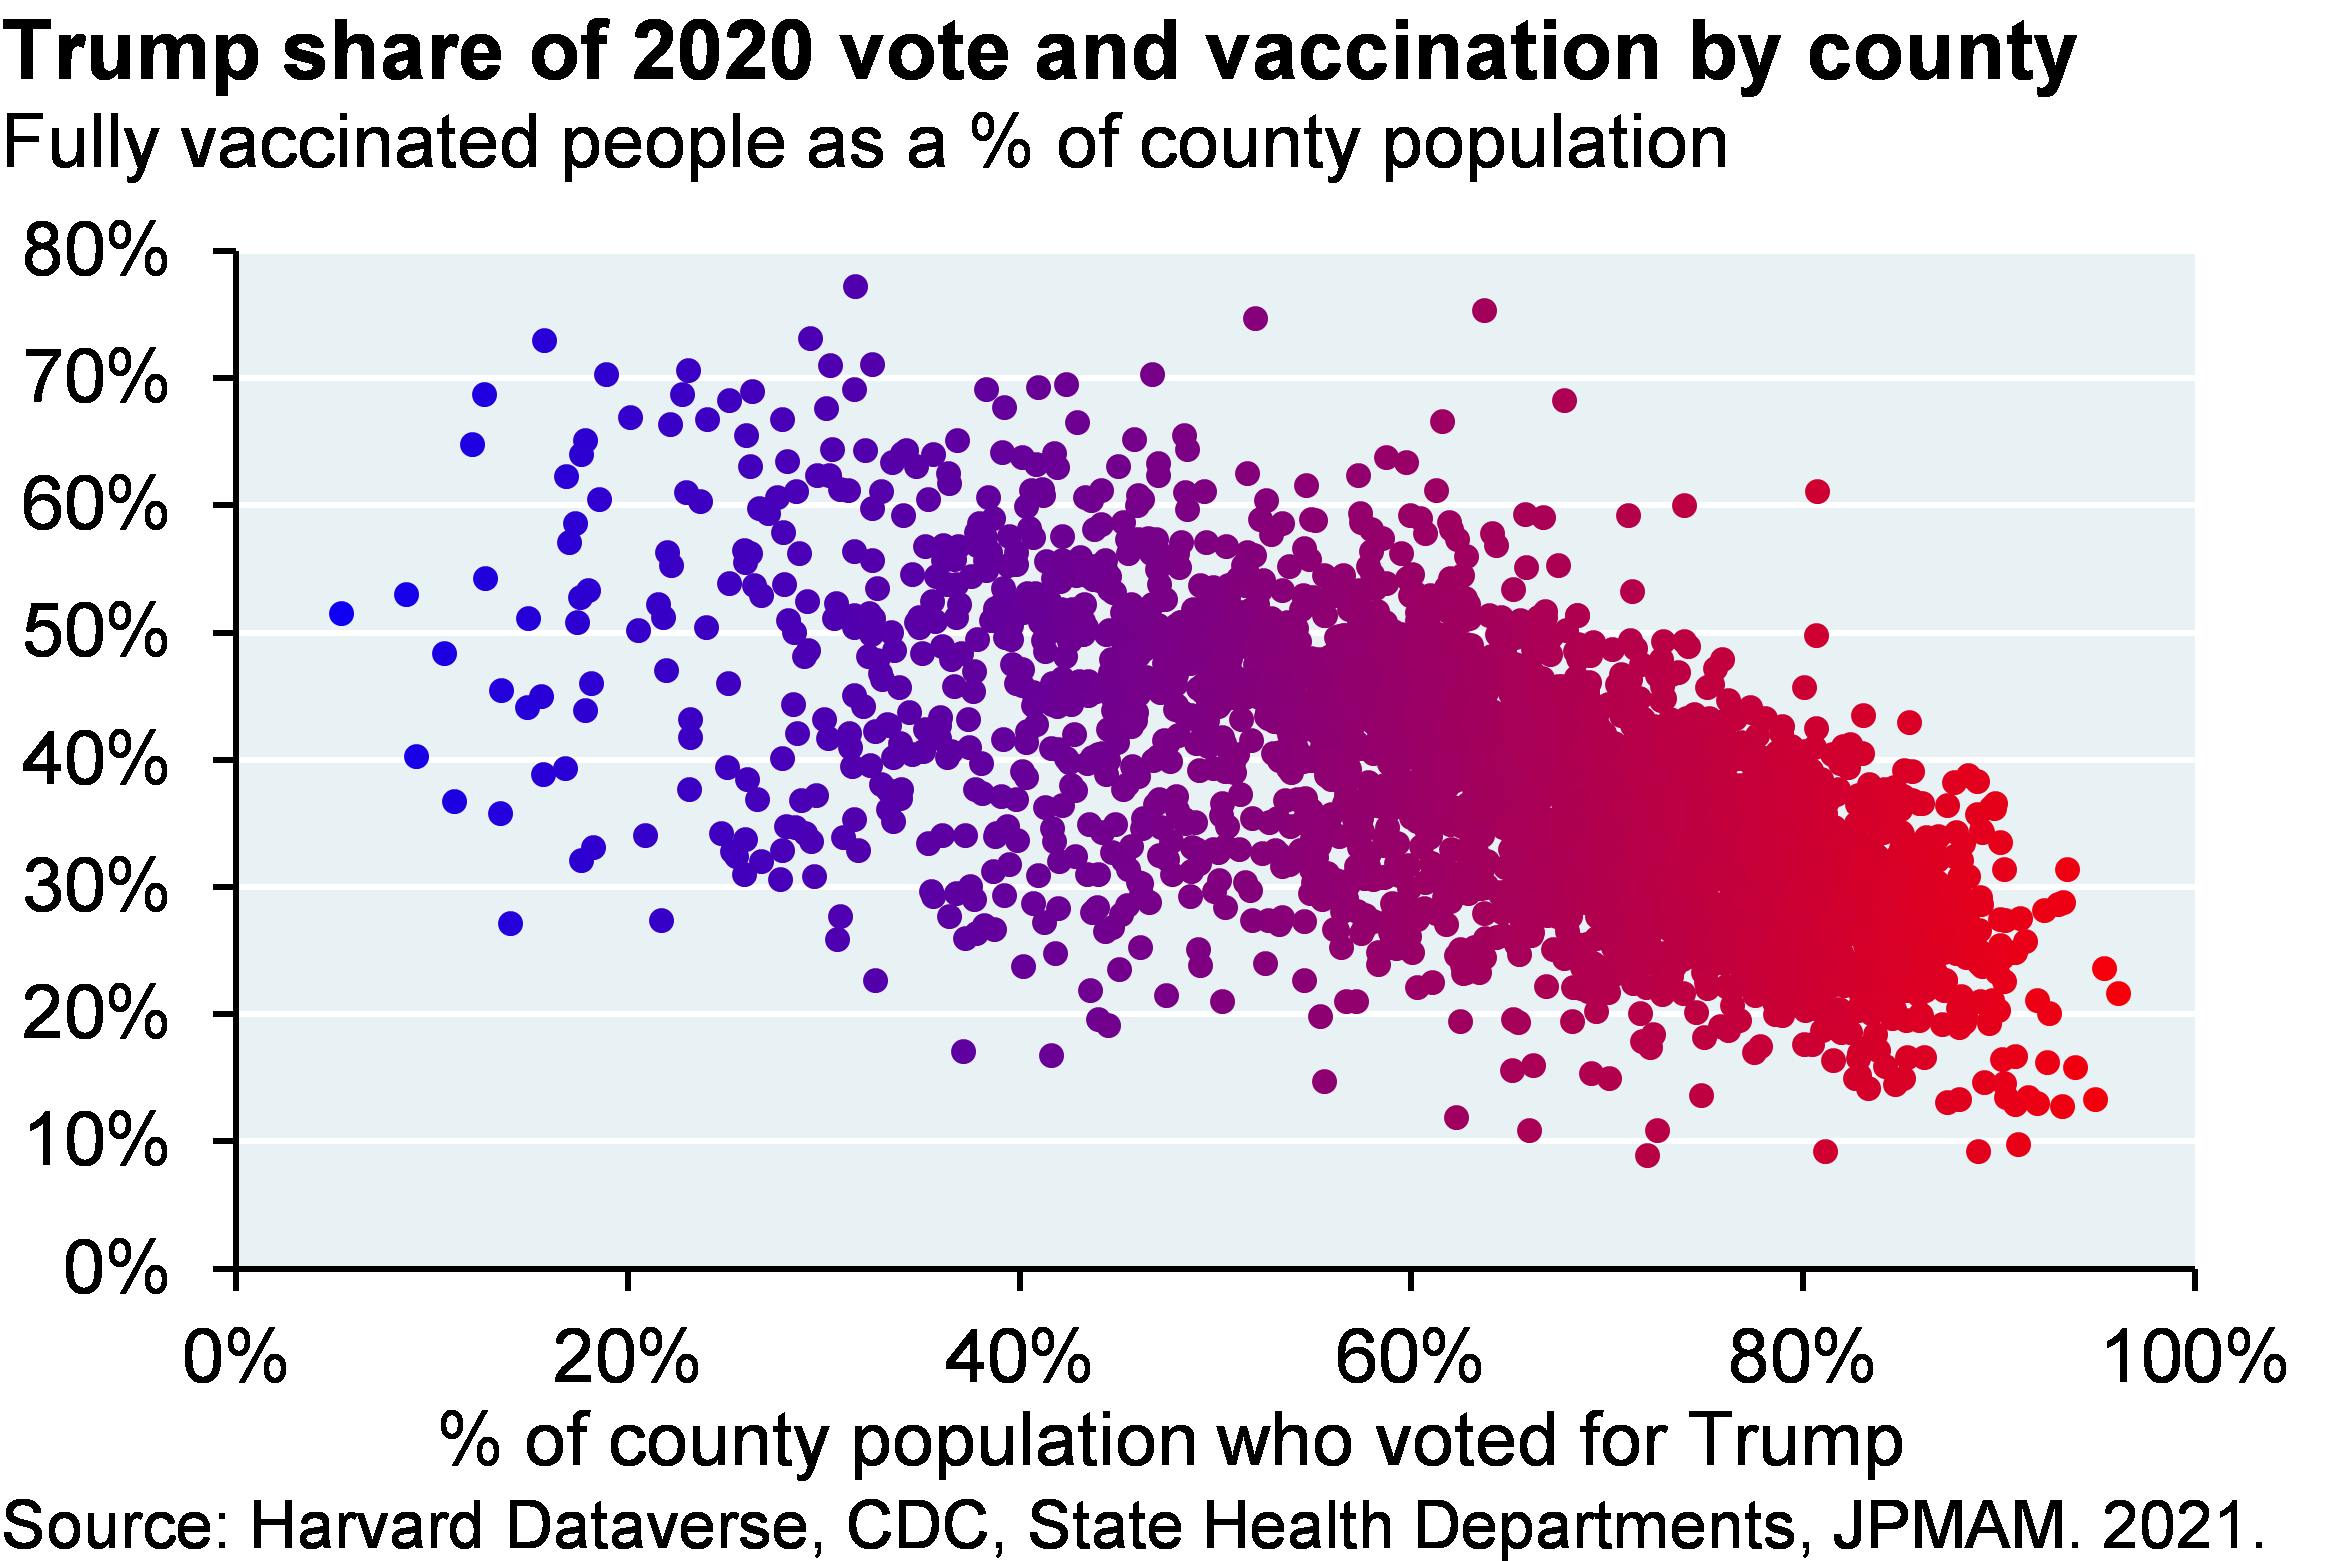 Scatter plot shows fully vaccinated people as a percentage of population vs the percentage of the population who voted for Trump, where each dot represents a US county. The dots illustrate that counties with more Trump voters tend to have lower vaccination rates.